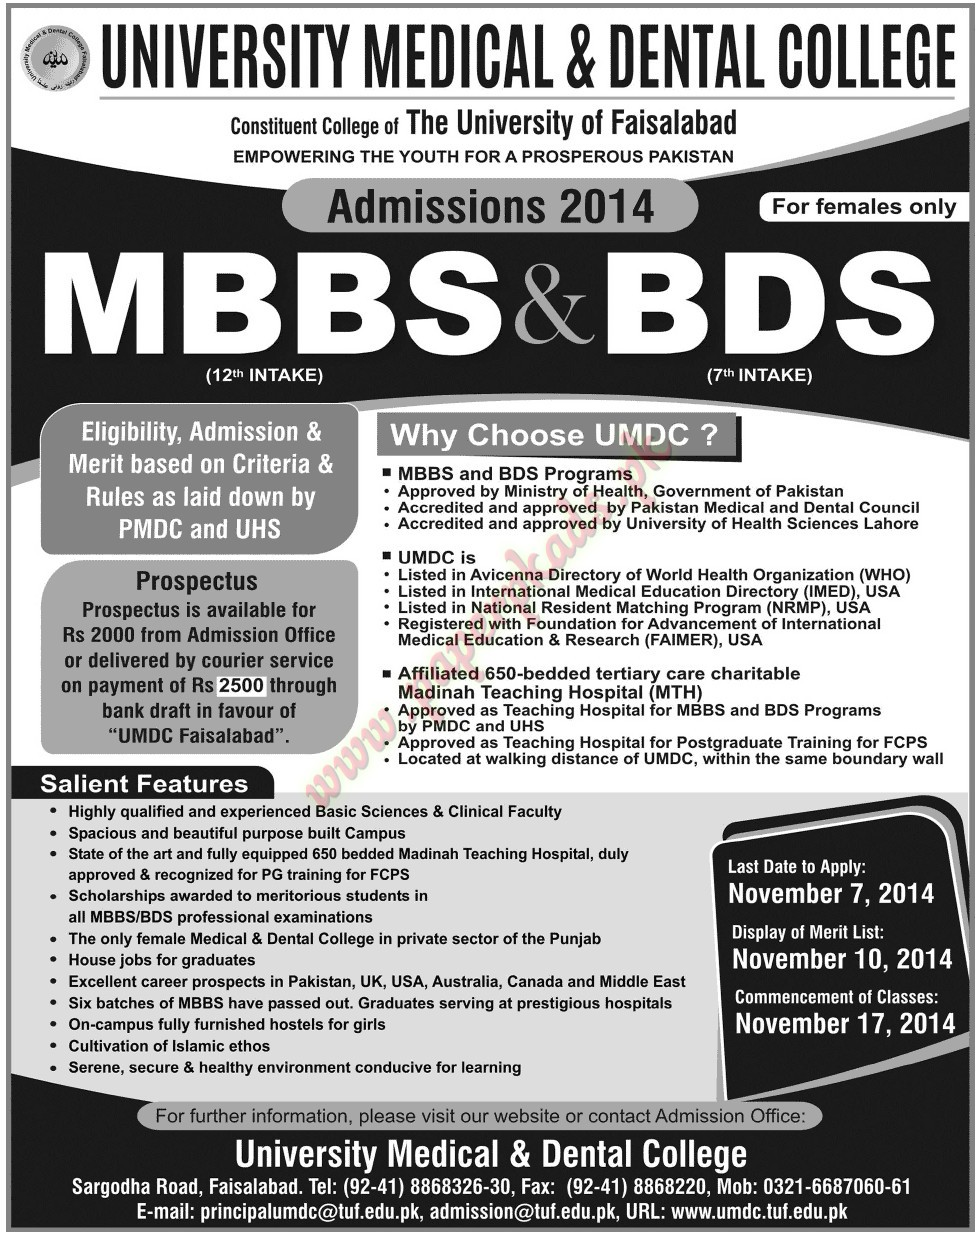 Admissions Open - University of Medical & Dental College - Jang 31 October 2014